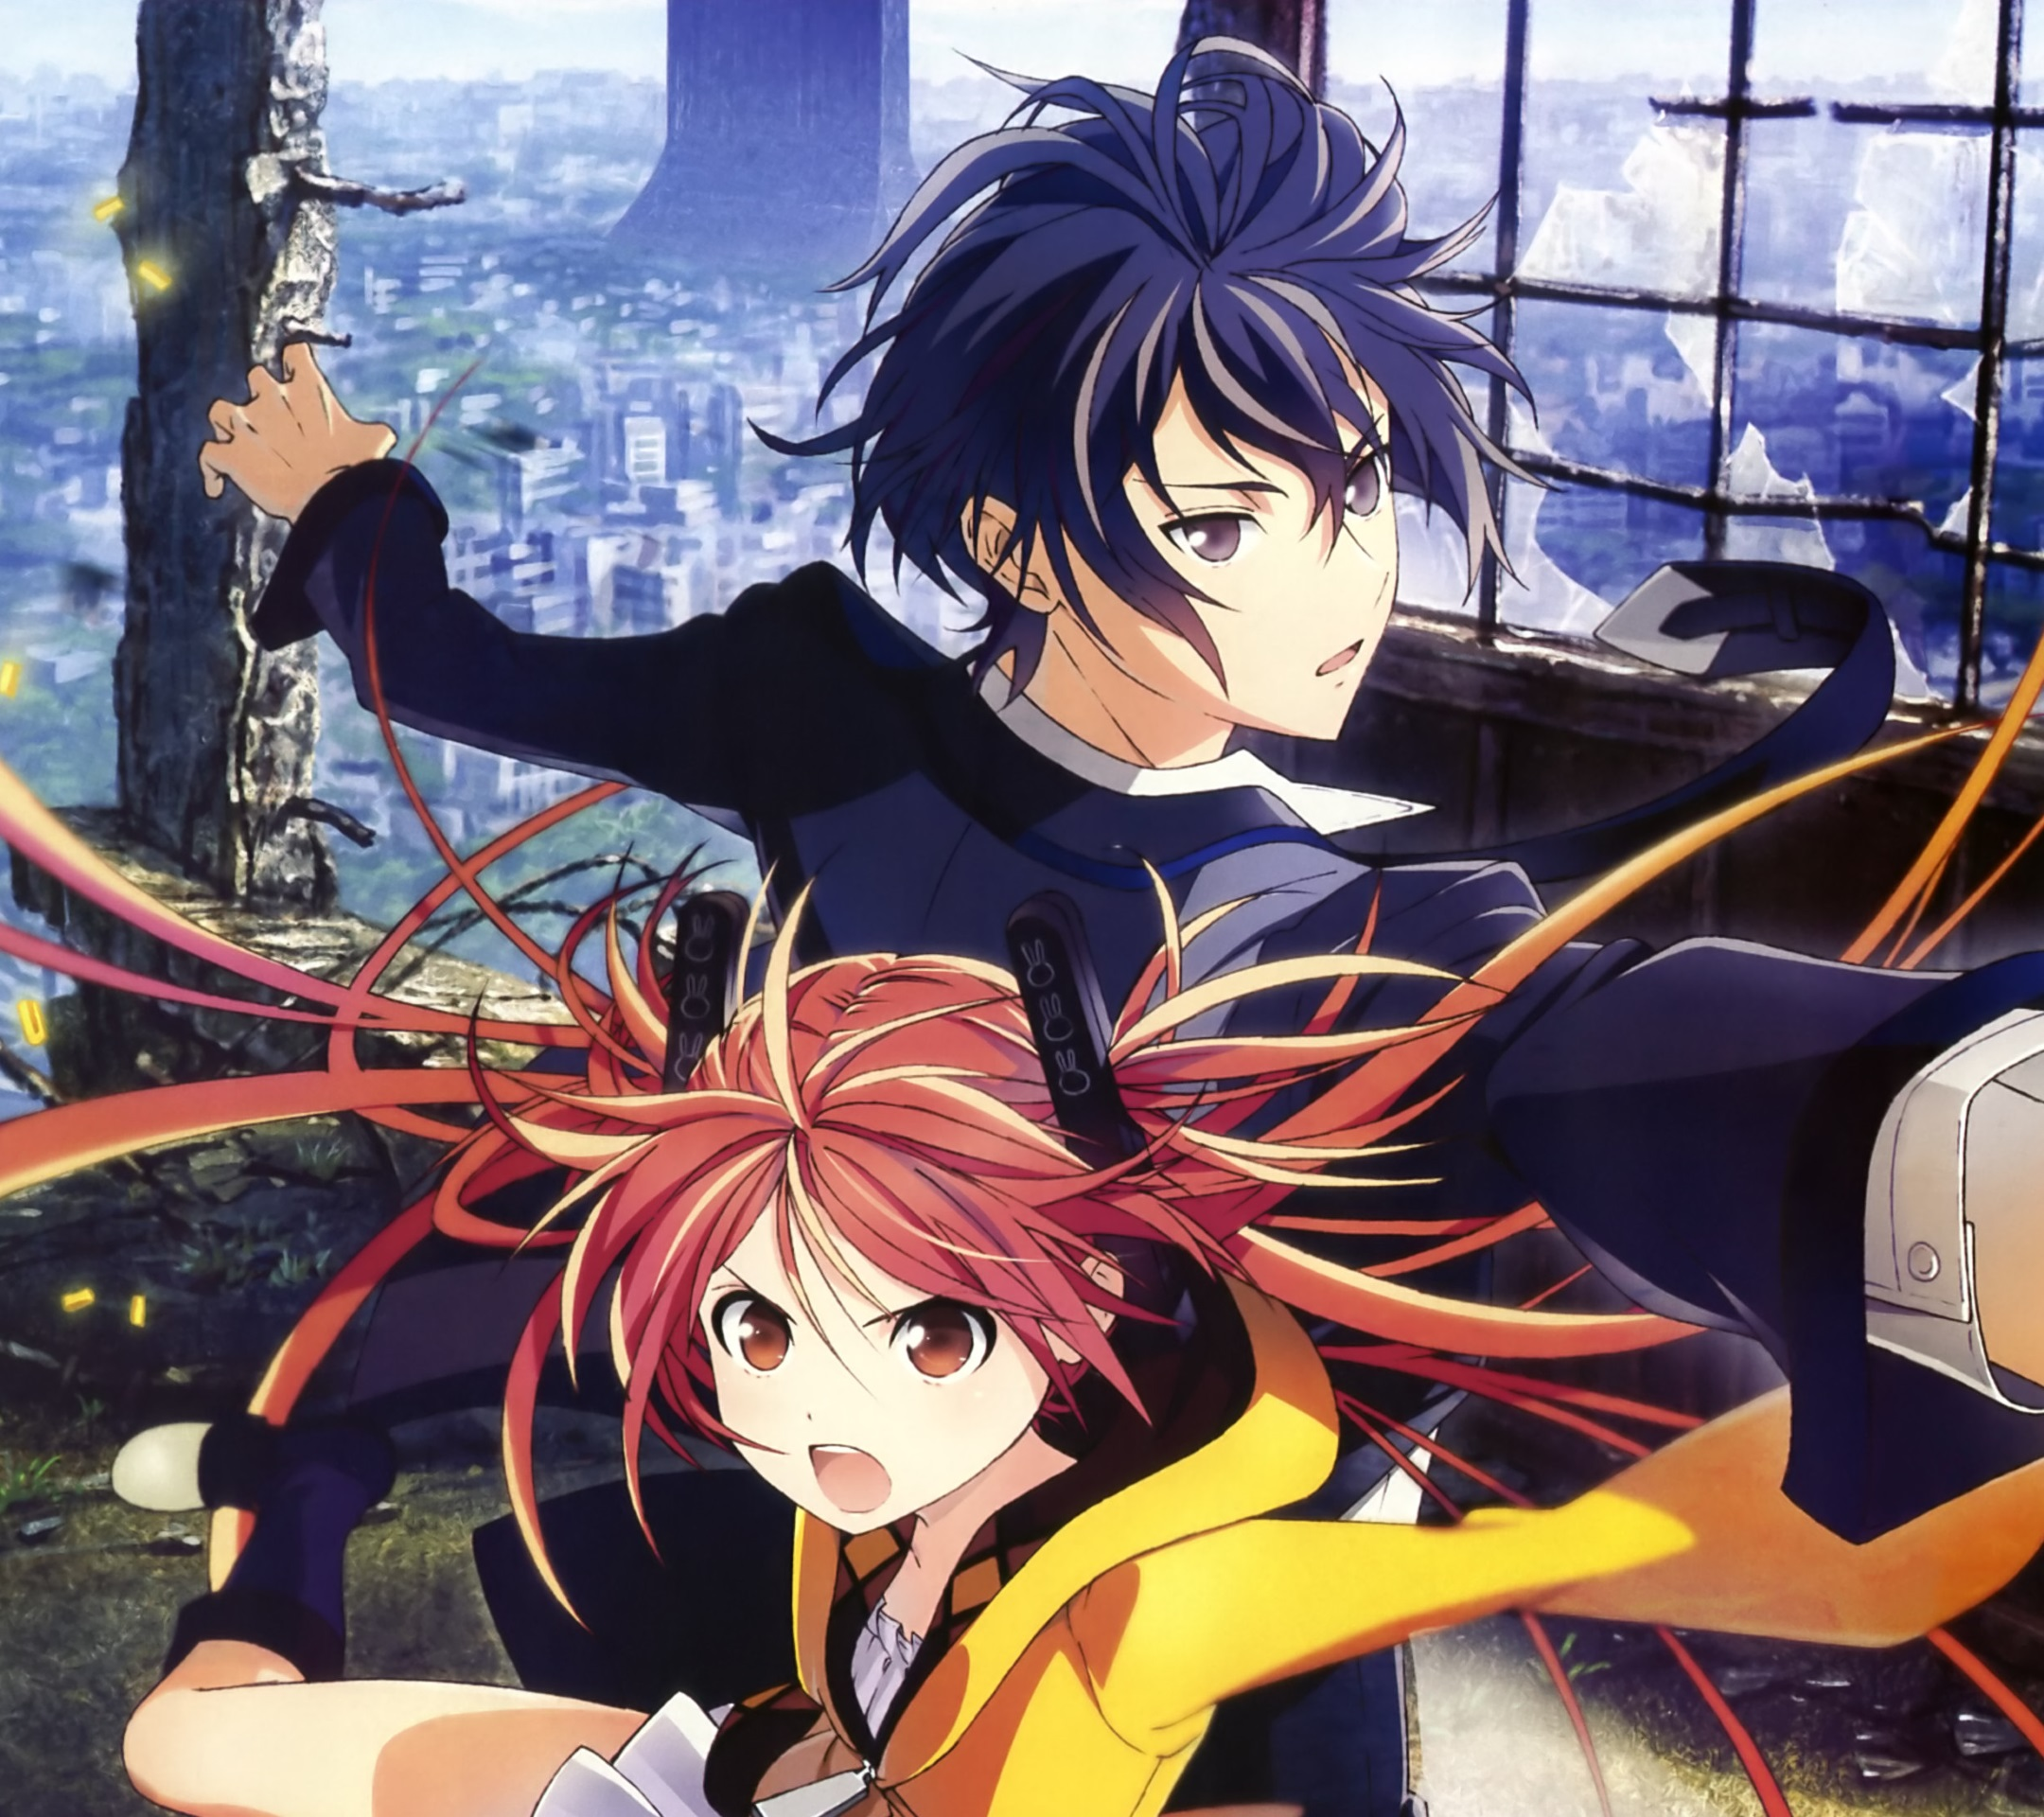 Smartphone Wallpaper 1080x1920: Black Bullet Android And HD Smartphone Wallpapers